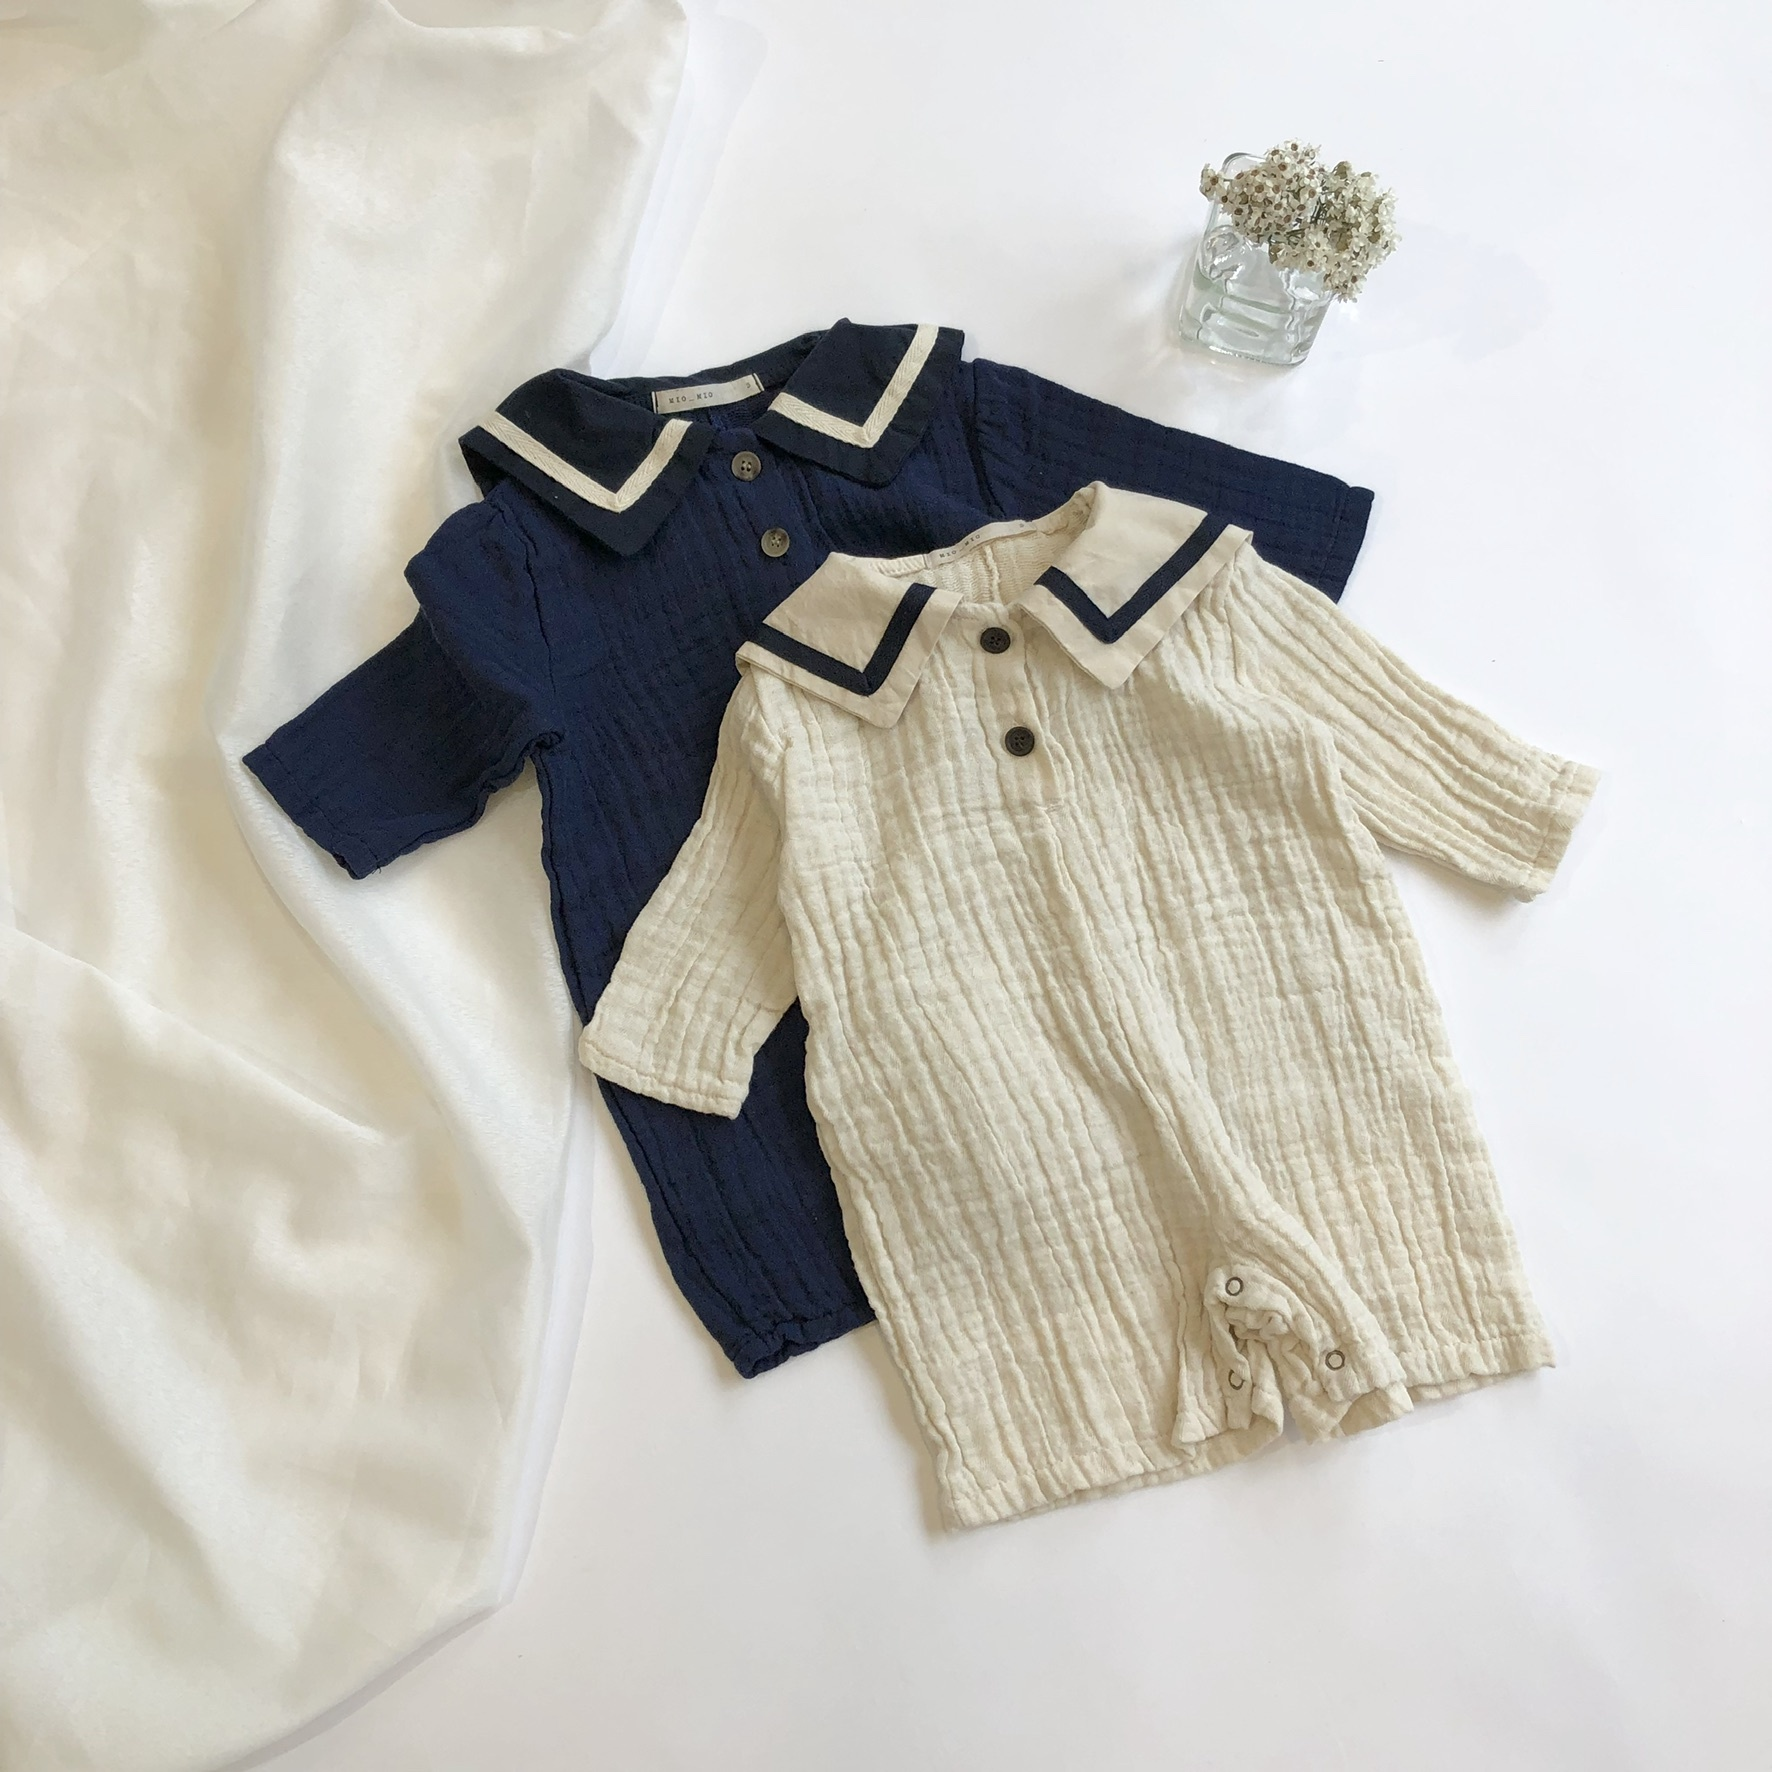 《 126 》Sailor coverall